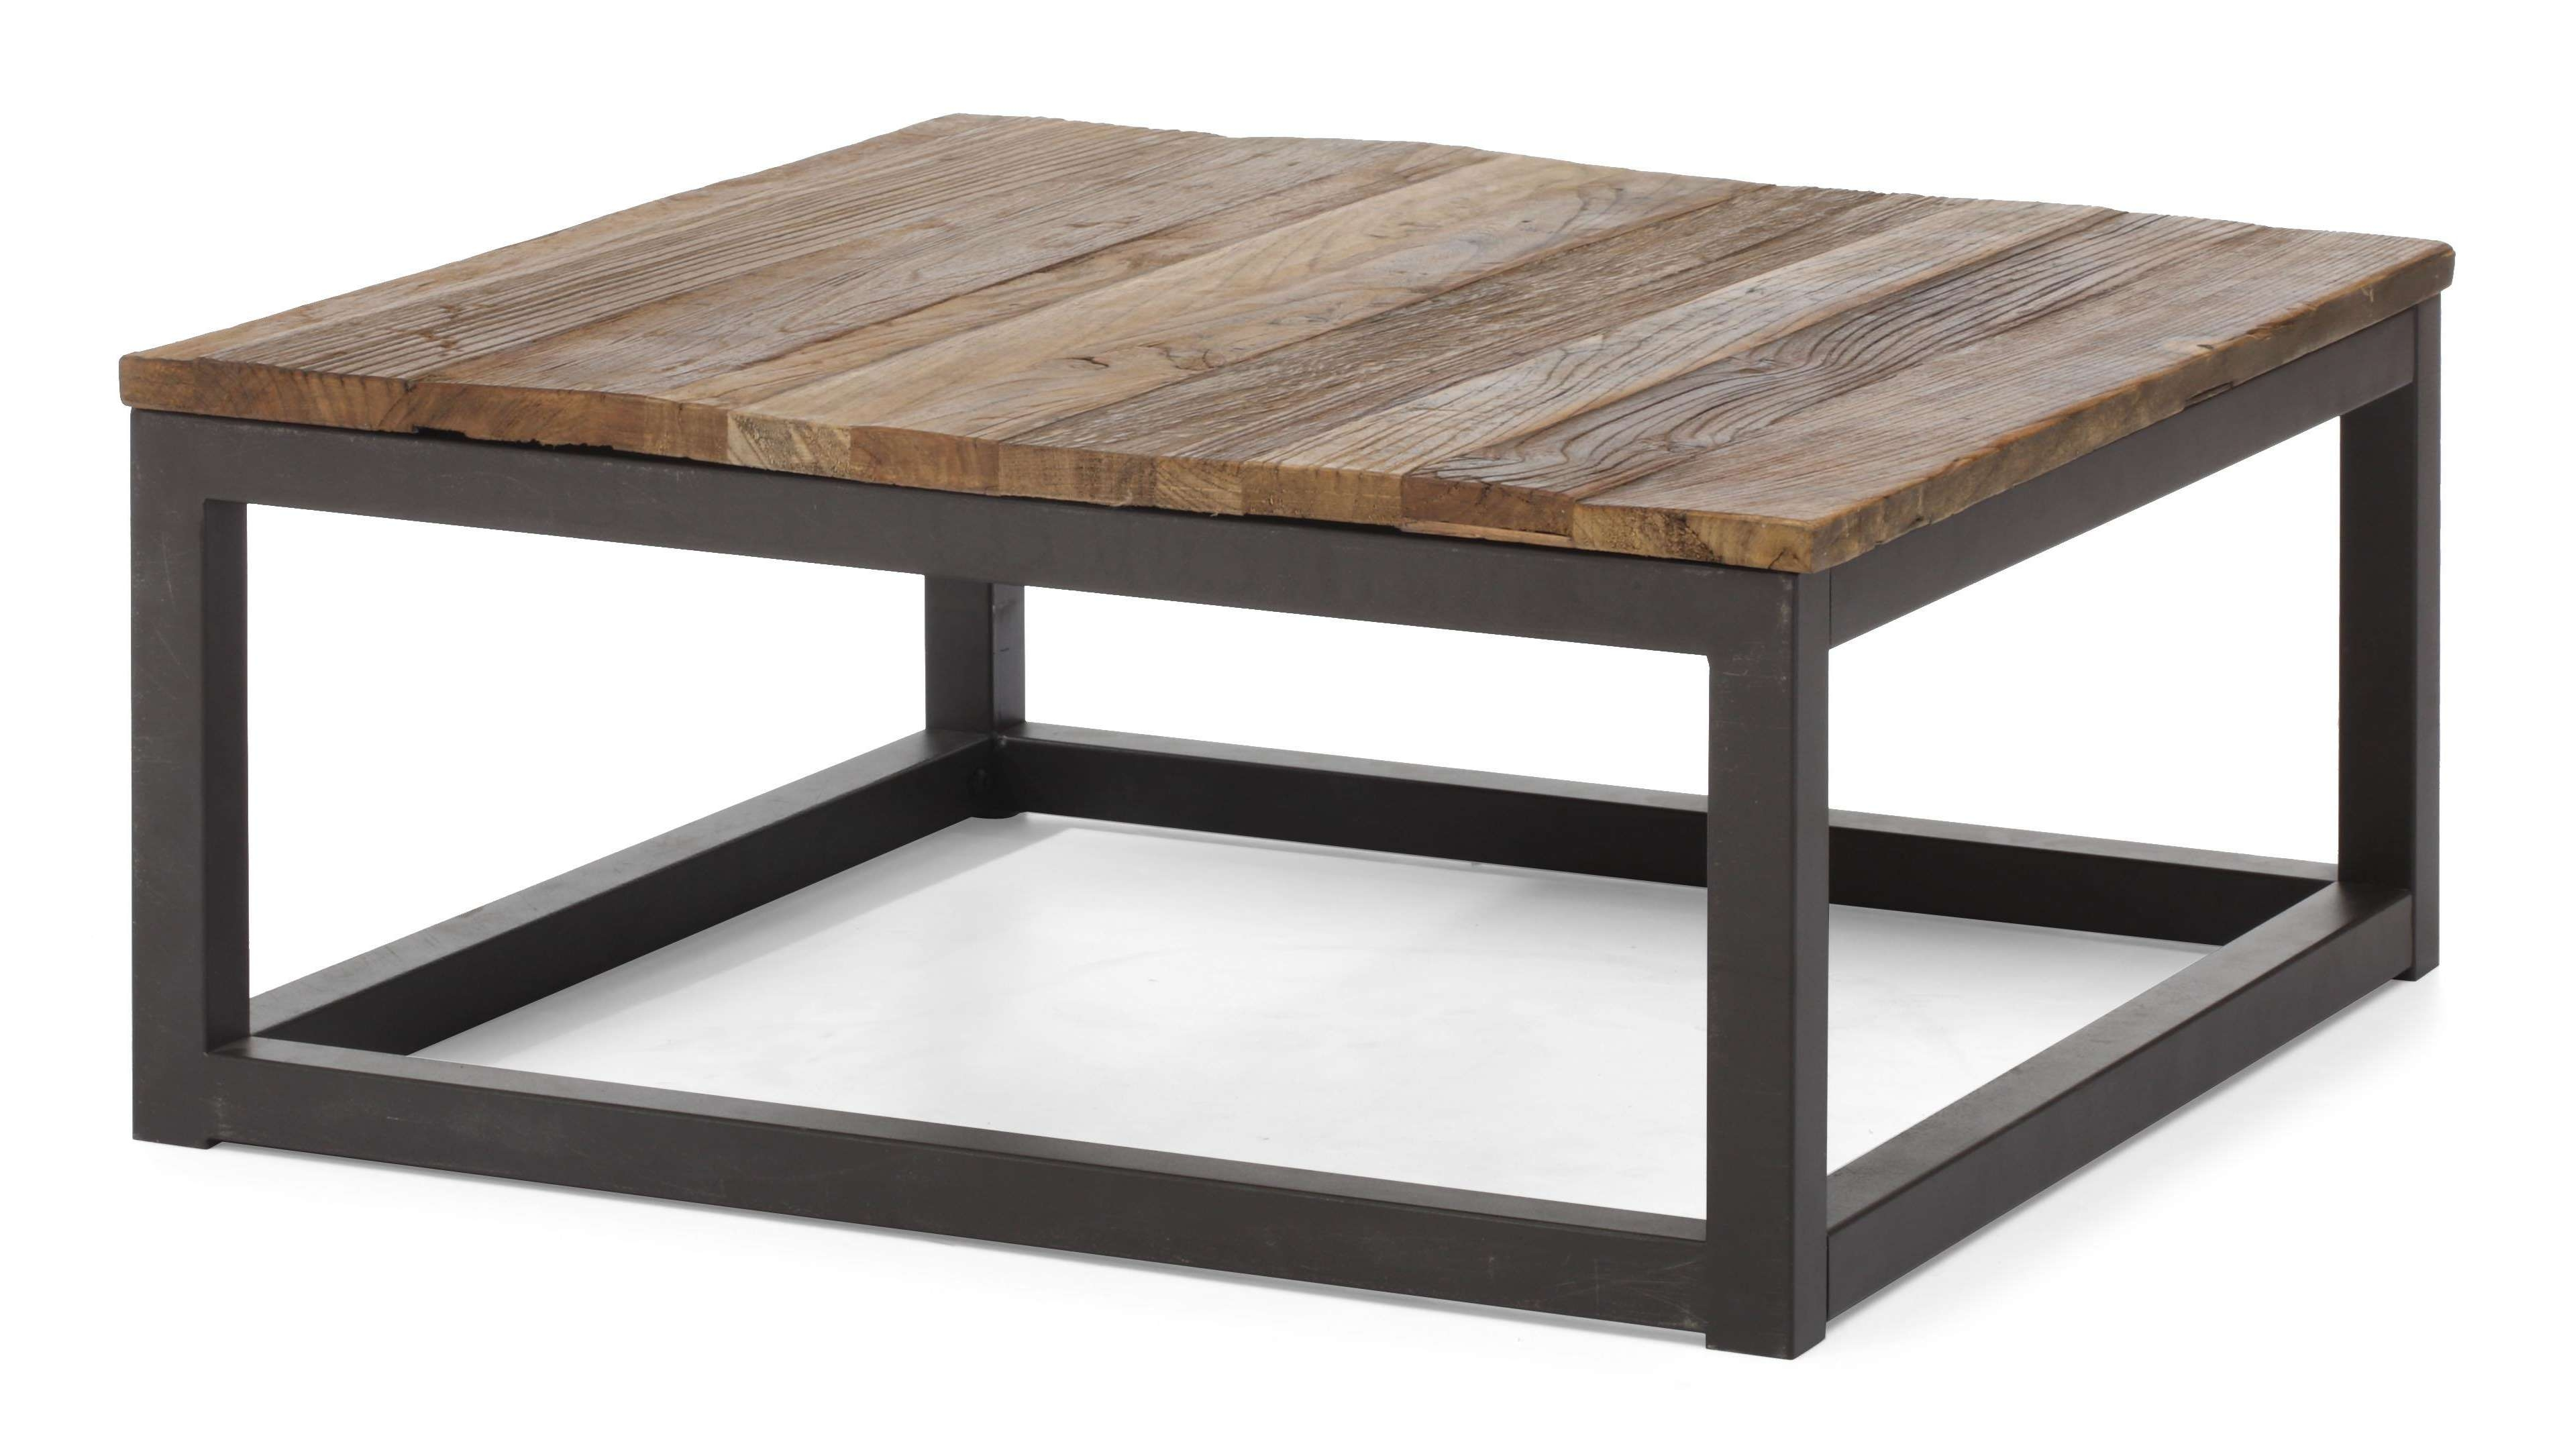 Coffee Tables Ideas: Awesome Cheap Wood Coffee Table Sets Living Regarding Most Popular Cheap Wood Coffee Tables (View 2 of 20)